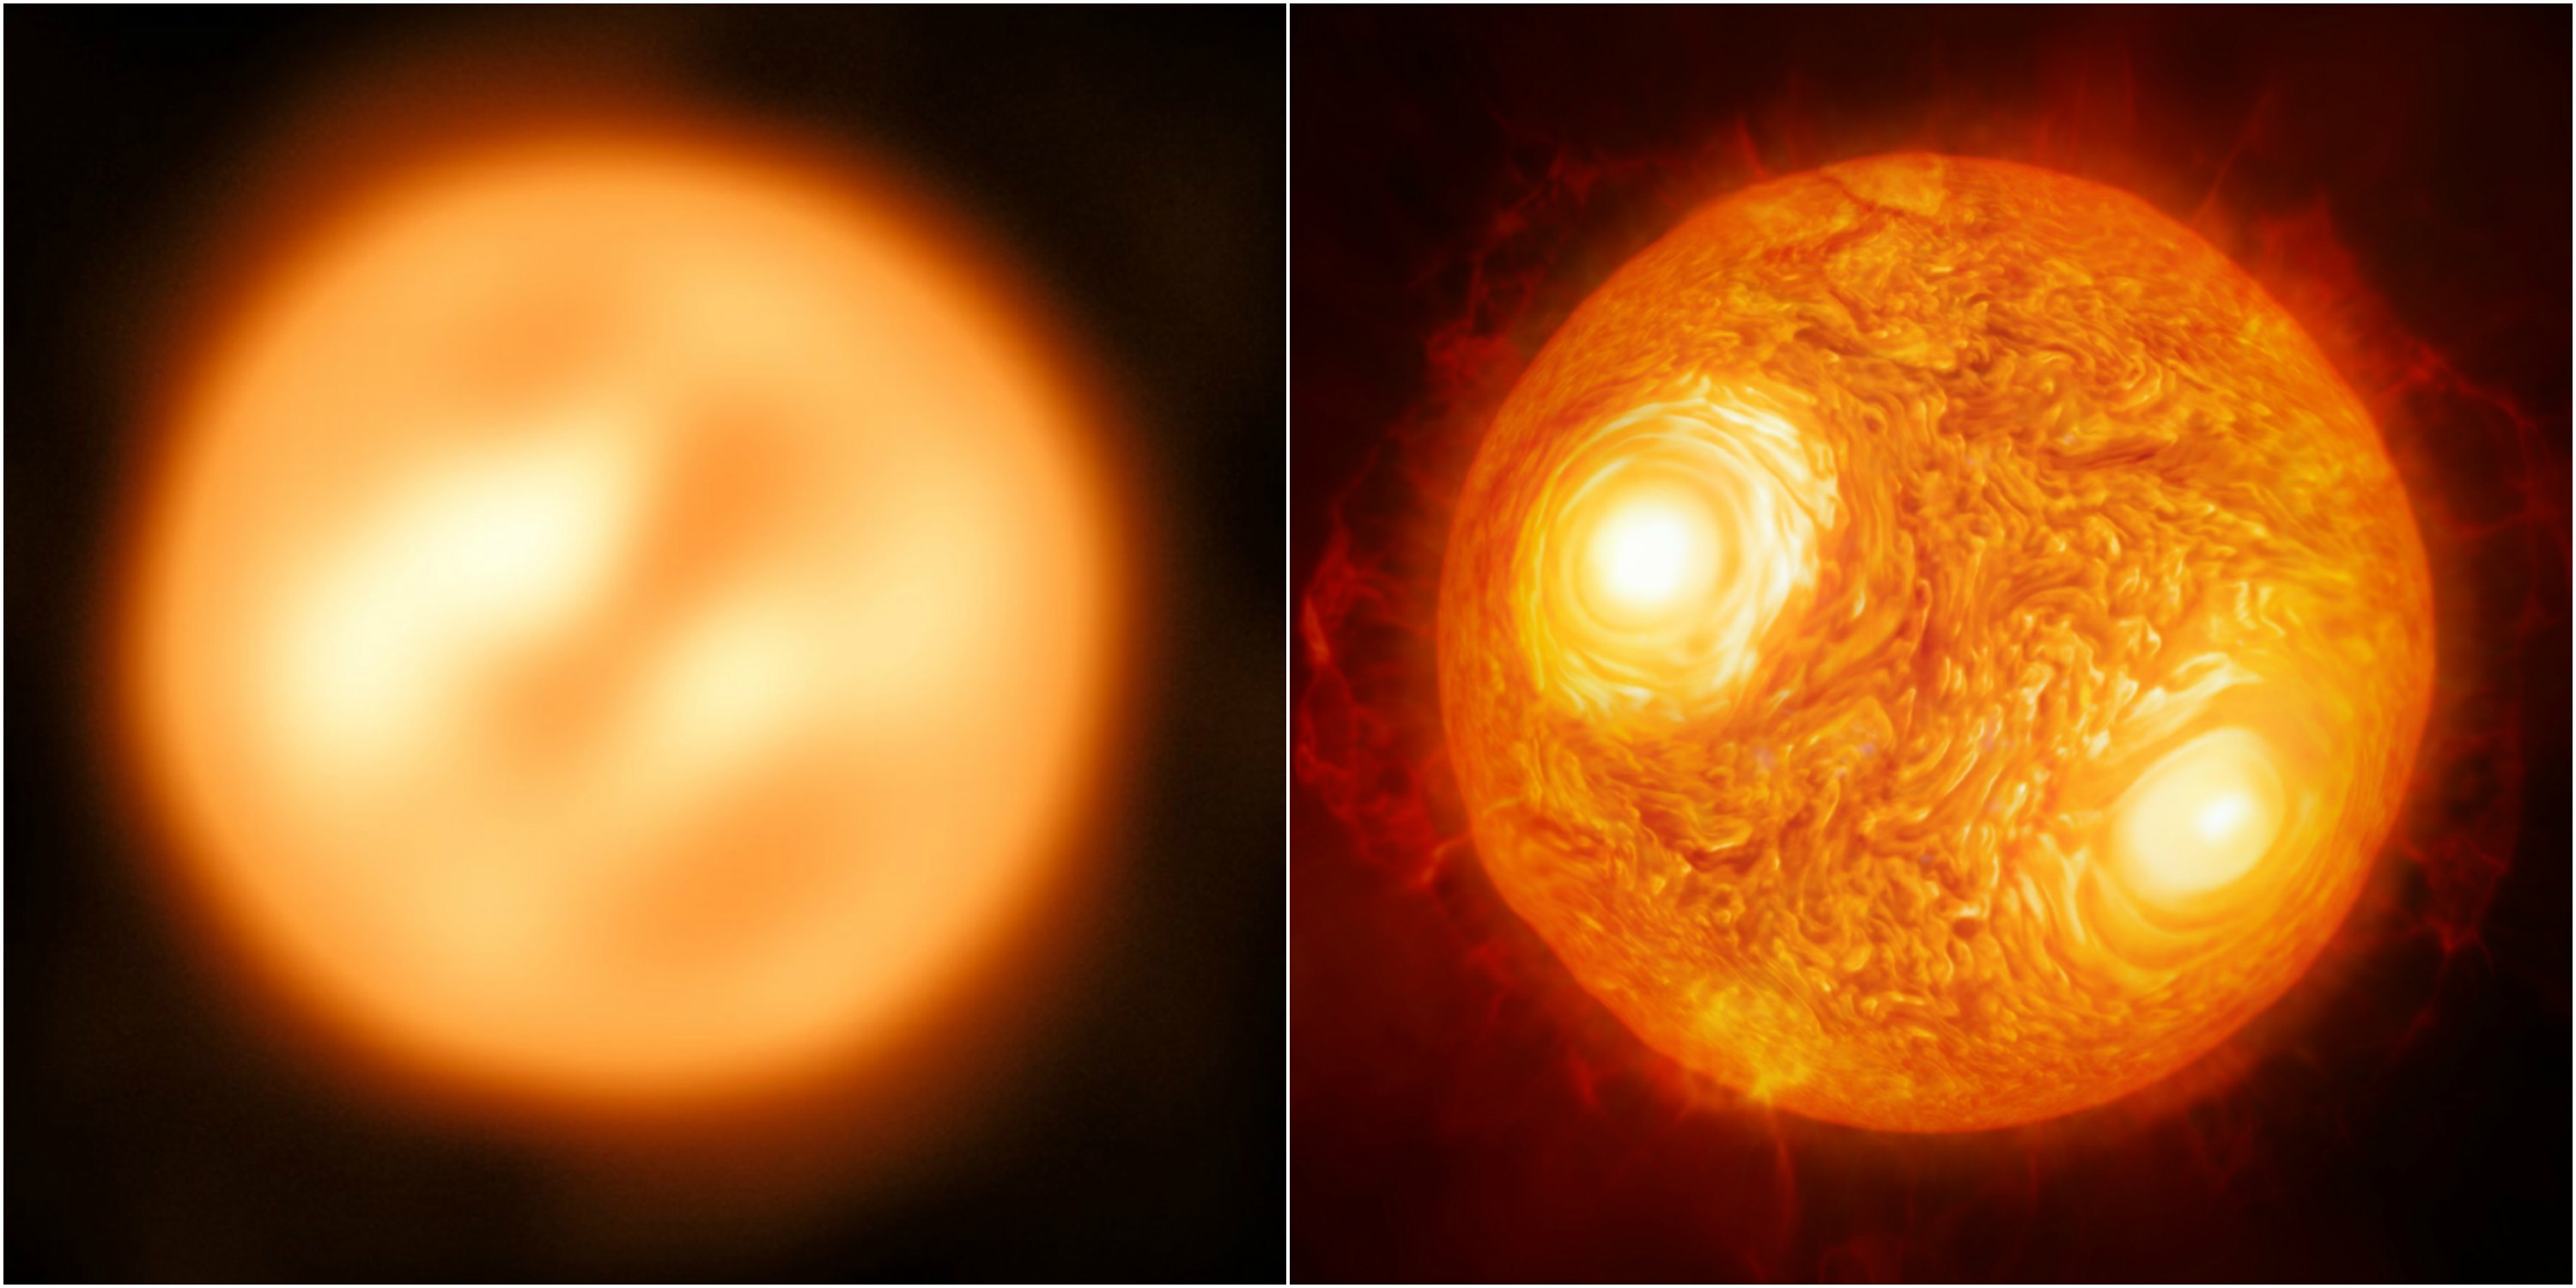 Astronomers Took One Of The Most-Detailed Images Ever Of A Star